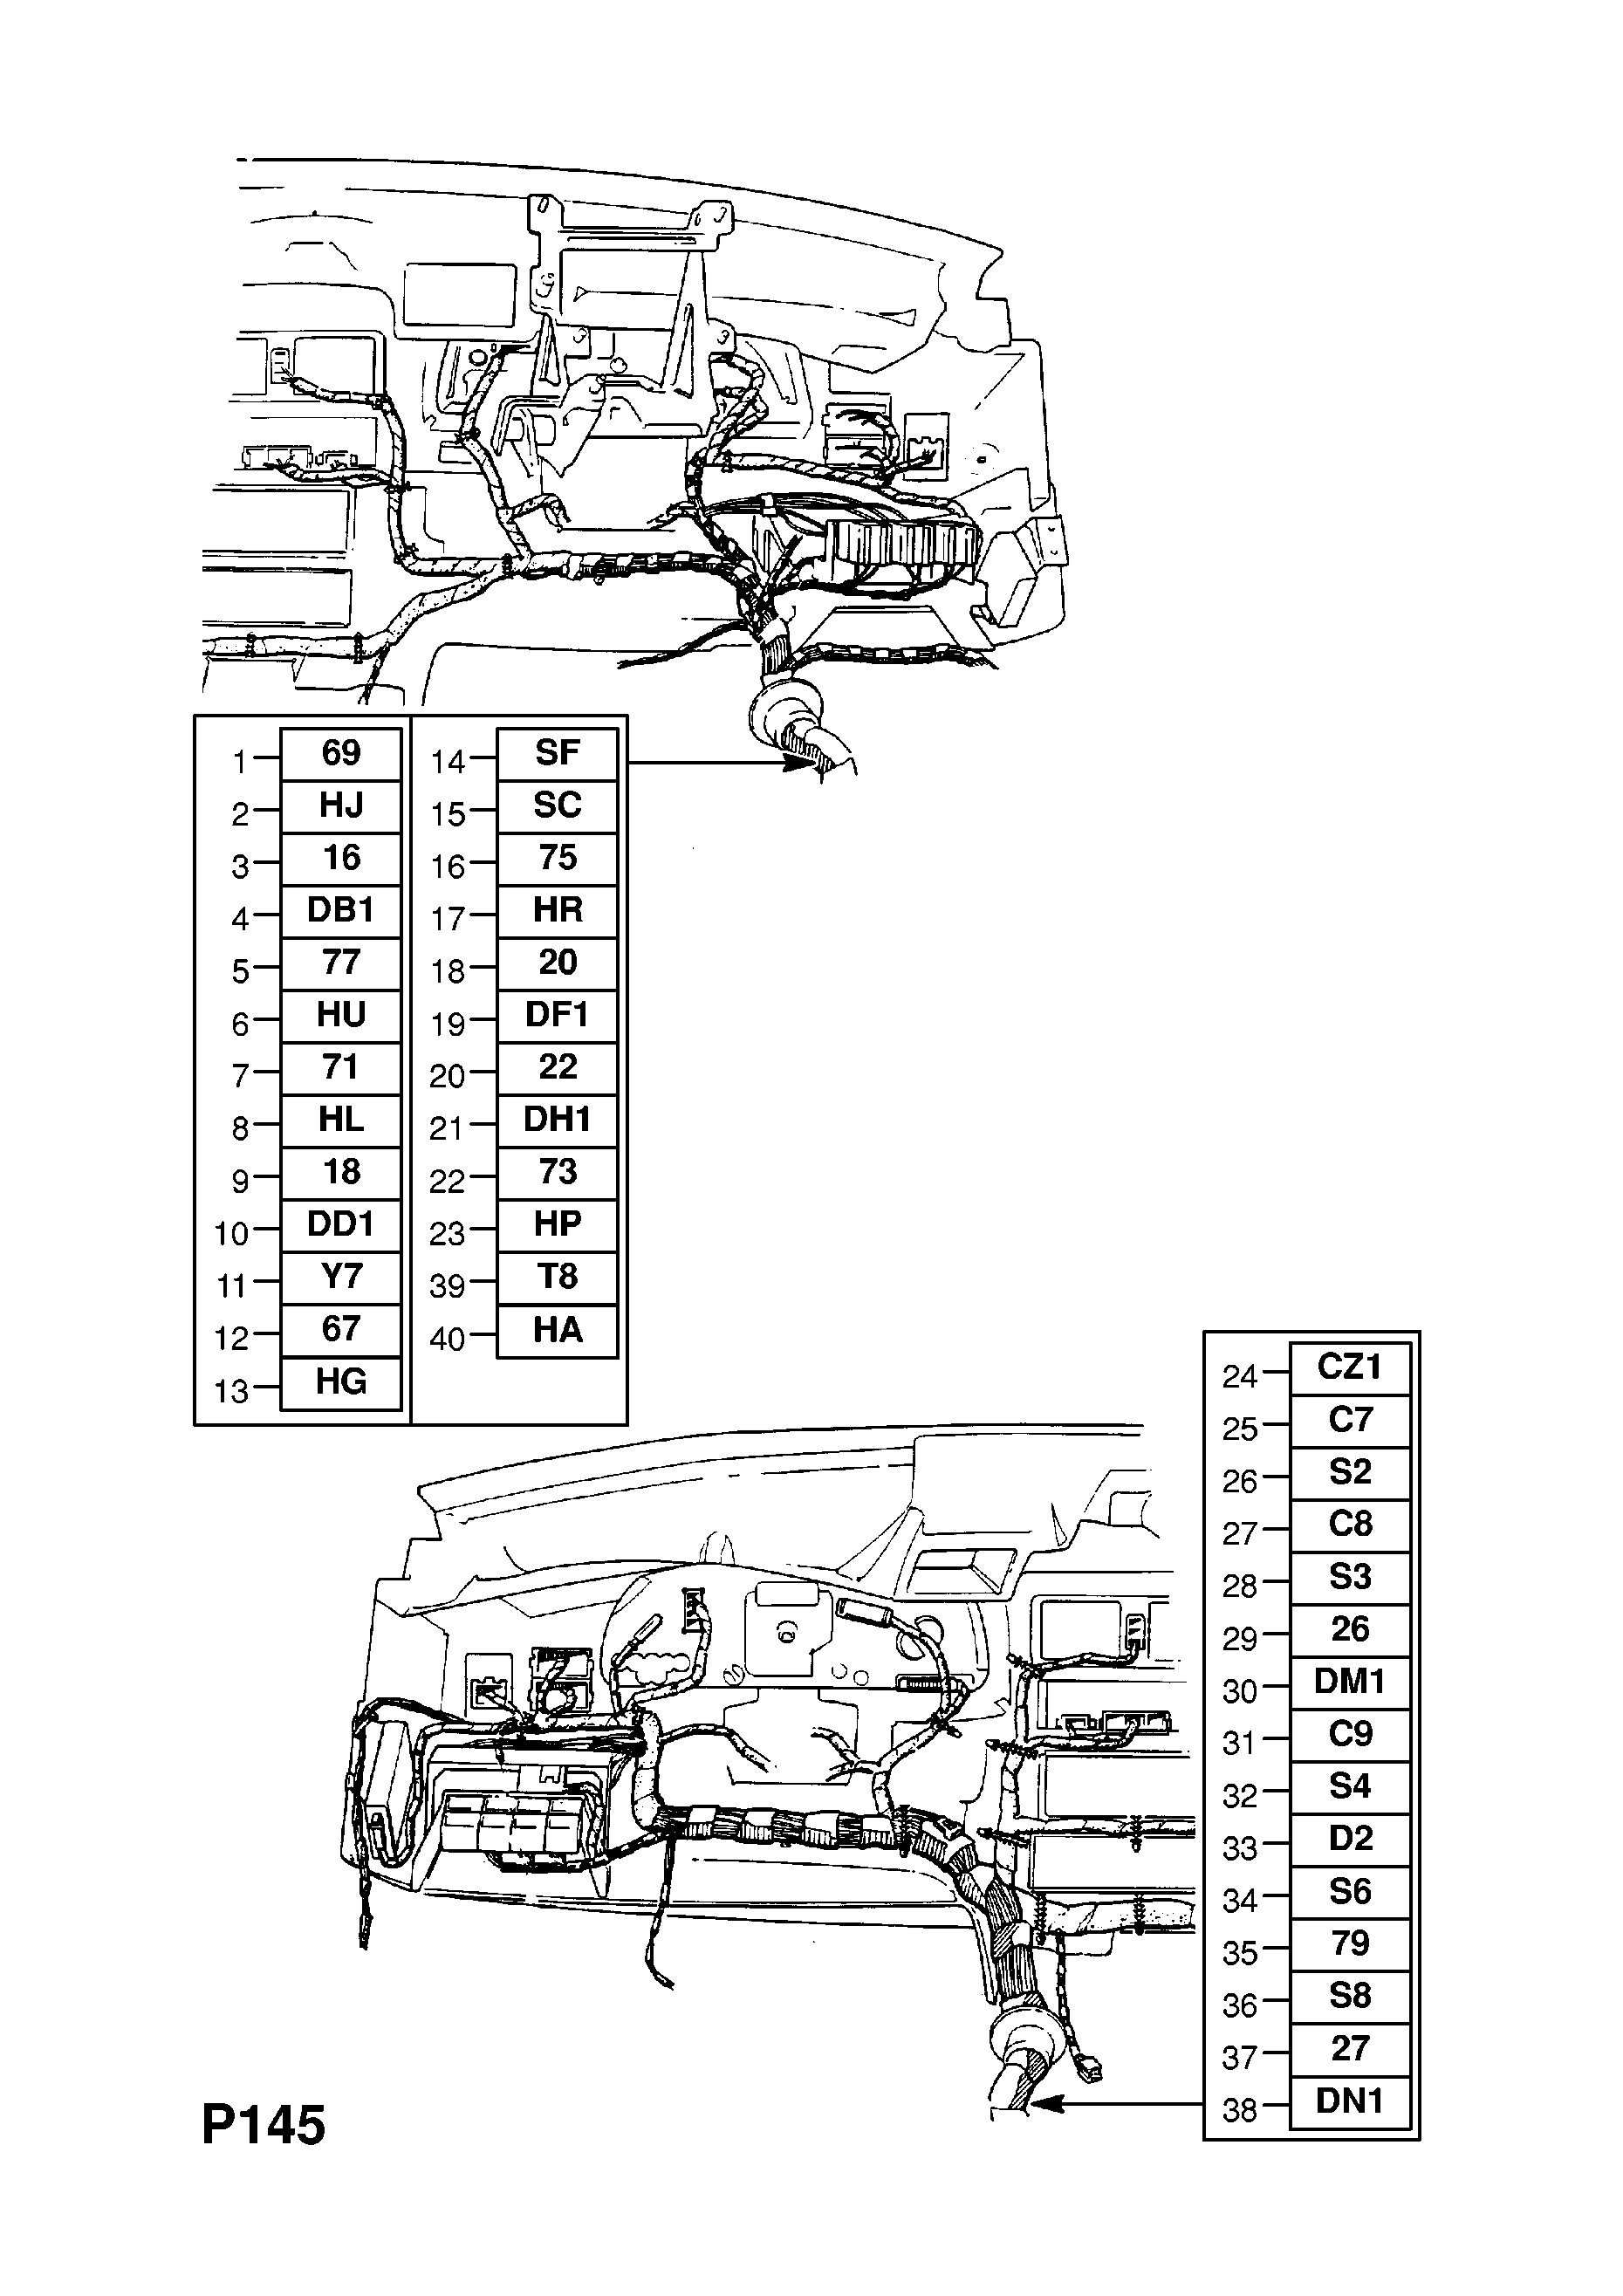 96AA6 Opel VECTRA-A - Instrument Panel Wiring Harness (contd ... on willys wheels, willys starter diagram, willys suspension, willys diesel conversion, willys horn, willys manuals, willys accessories, willys carburetor, jeep electrical diagram, willys oil filter, willys clock, willys exhaust diagram, 1944 willys wire diagram, willys headlights, willys firing order, willys 3 speed transmission, willys brakes, willys chassis, willys mb motor diagram, willys parts,